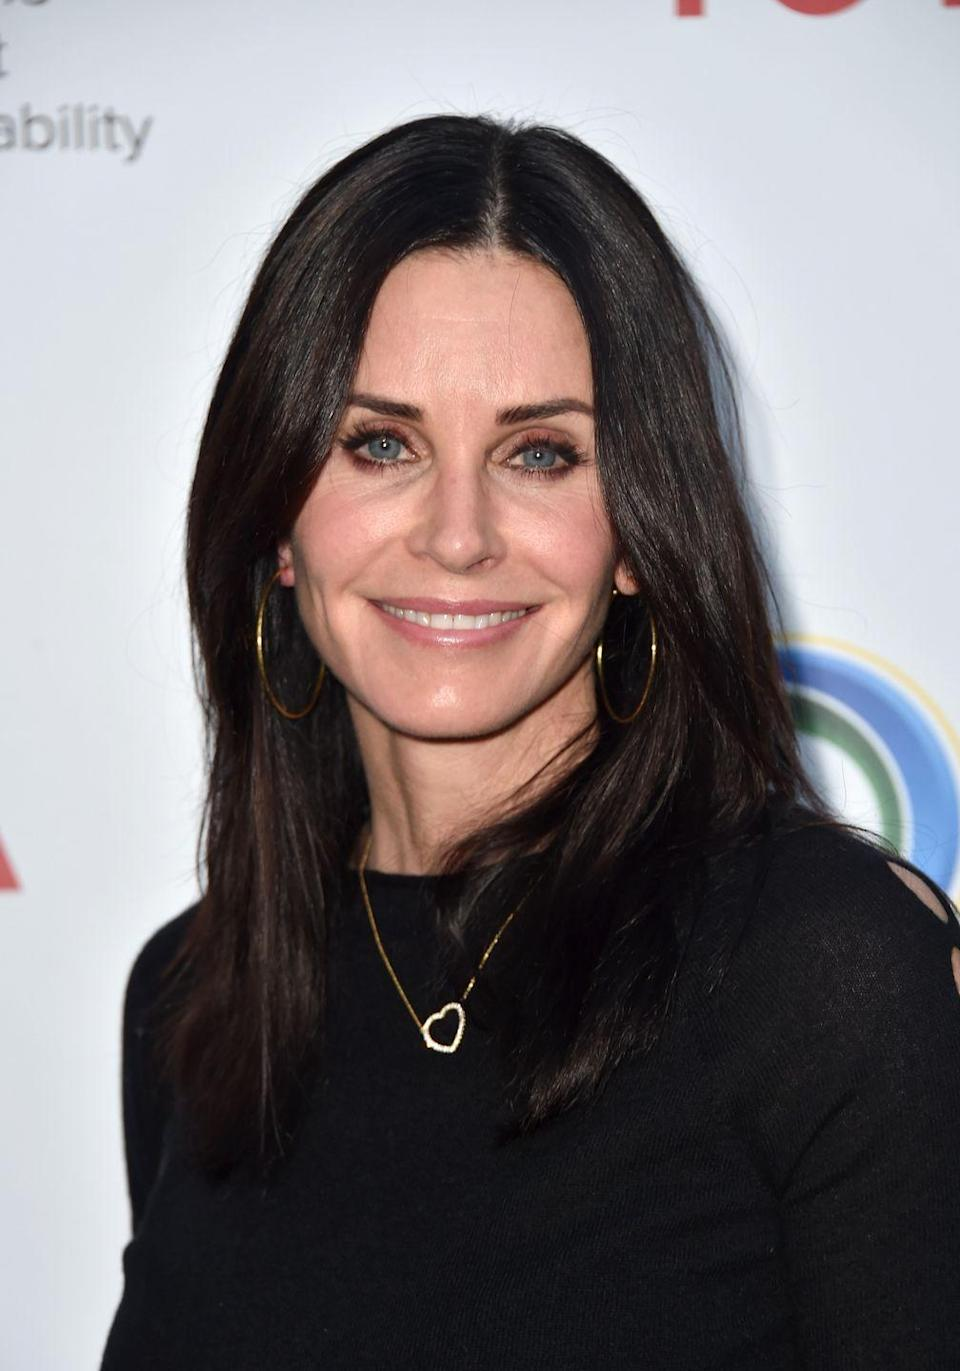 """<p>Courteney Cox said many doctors suggest she get fillers every now and then, which led to layers upon layers of cosmetic enhancement that she didn't like. 'I've had all my fillers dissolved. I'm as natural as I can be' the Friends star <a href=""""https://www.newbeauty.com/courteney-cox-beauty/"""" rel=""""nofollow noopener"""" target=""""_blank"""" data-ylk=""""slk:told New Beauty"""" class=""""link rapid-noclick-resp"""">told New Beauty</a>. I feel better because I look like myself. I think that I now look more like the person that I was. I hope I do,' she said.</p>"""